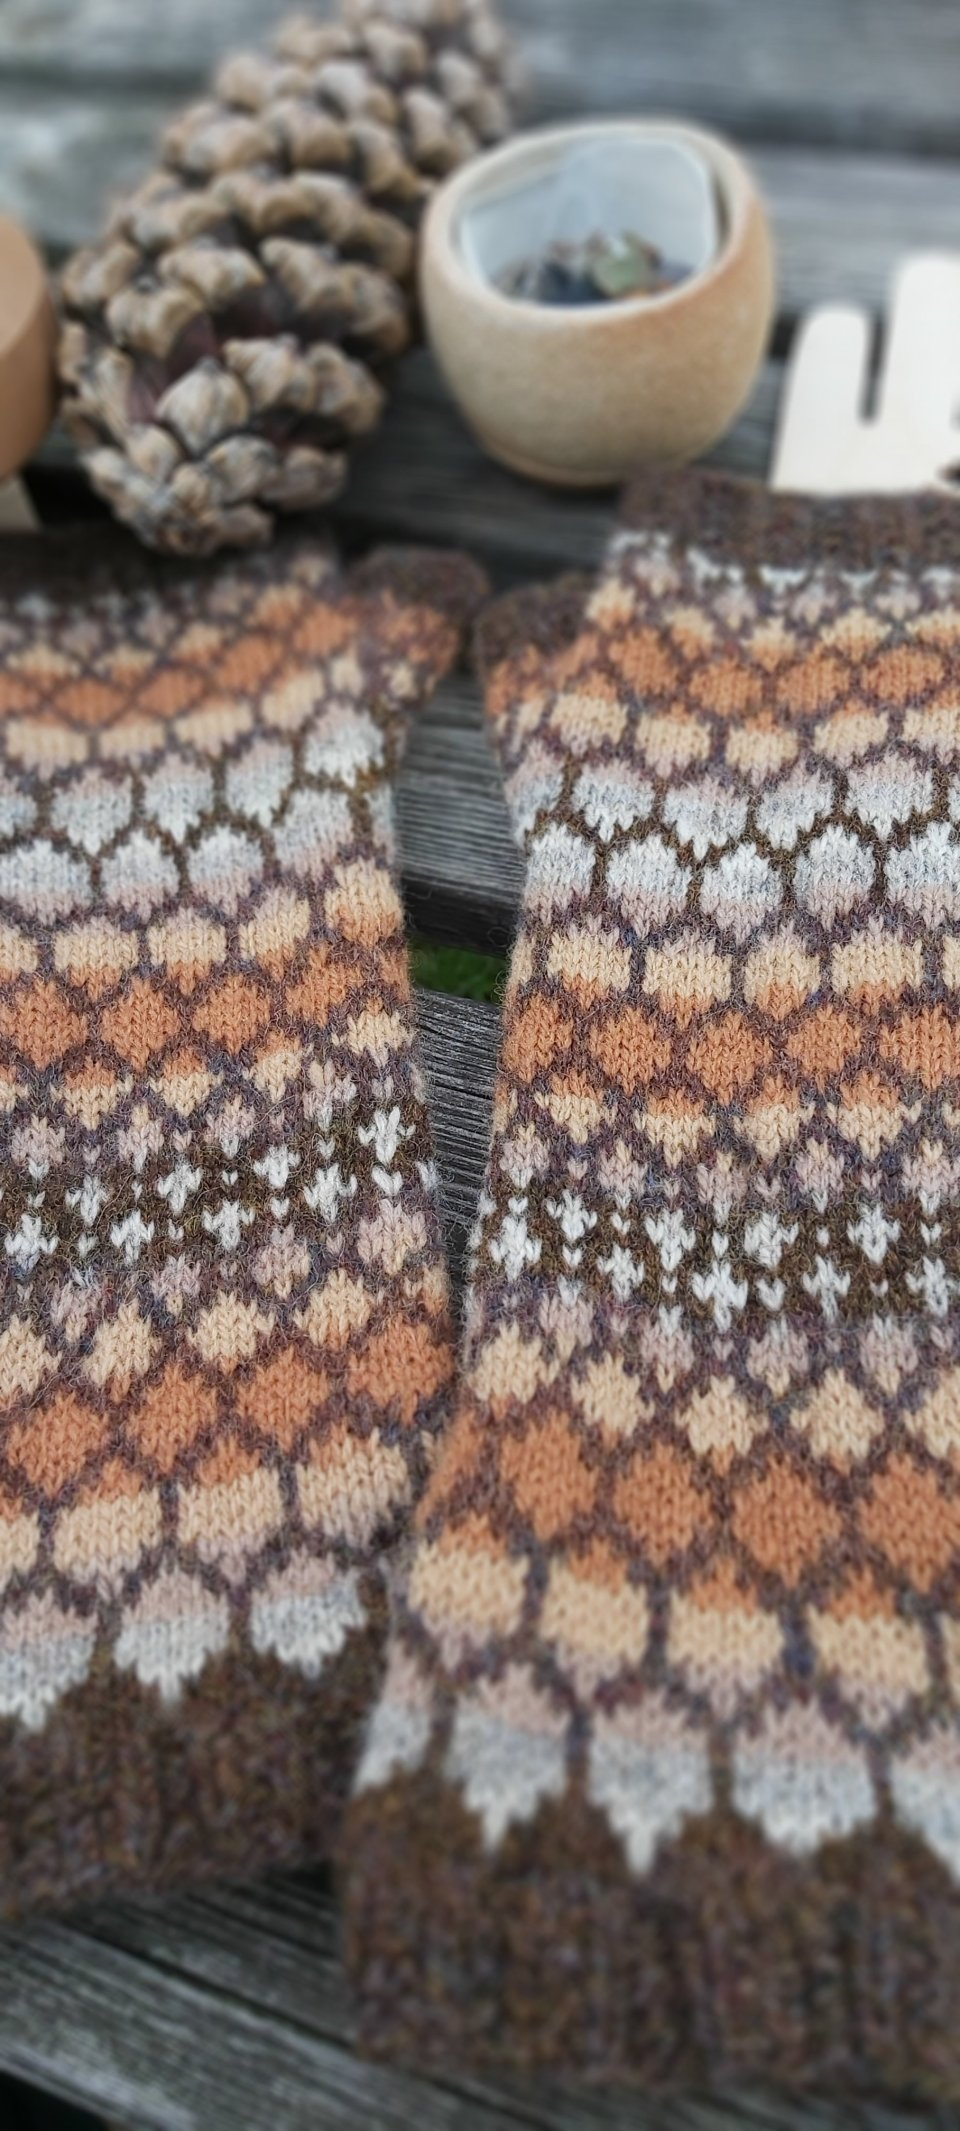 Skystone armwarmers in pinecone colourway